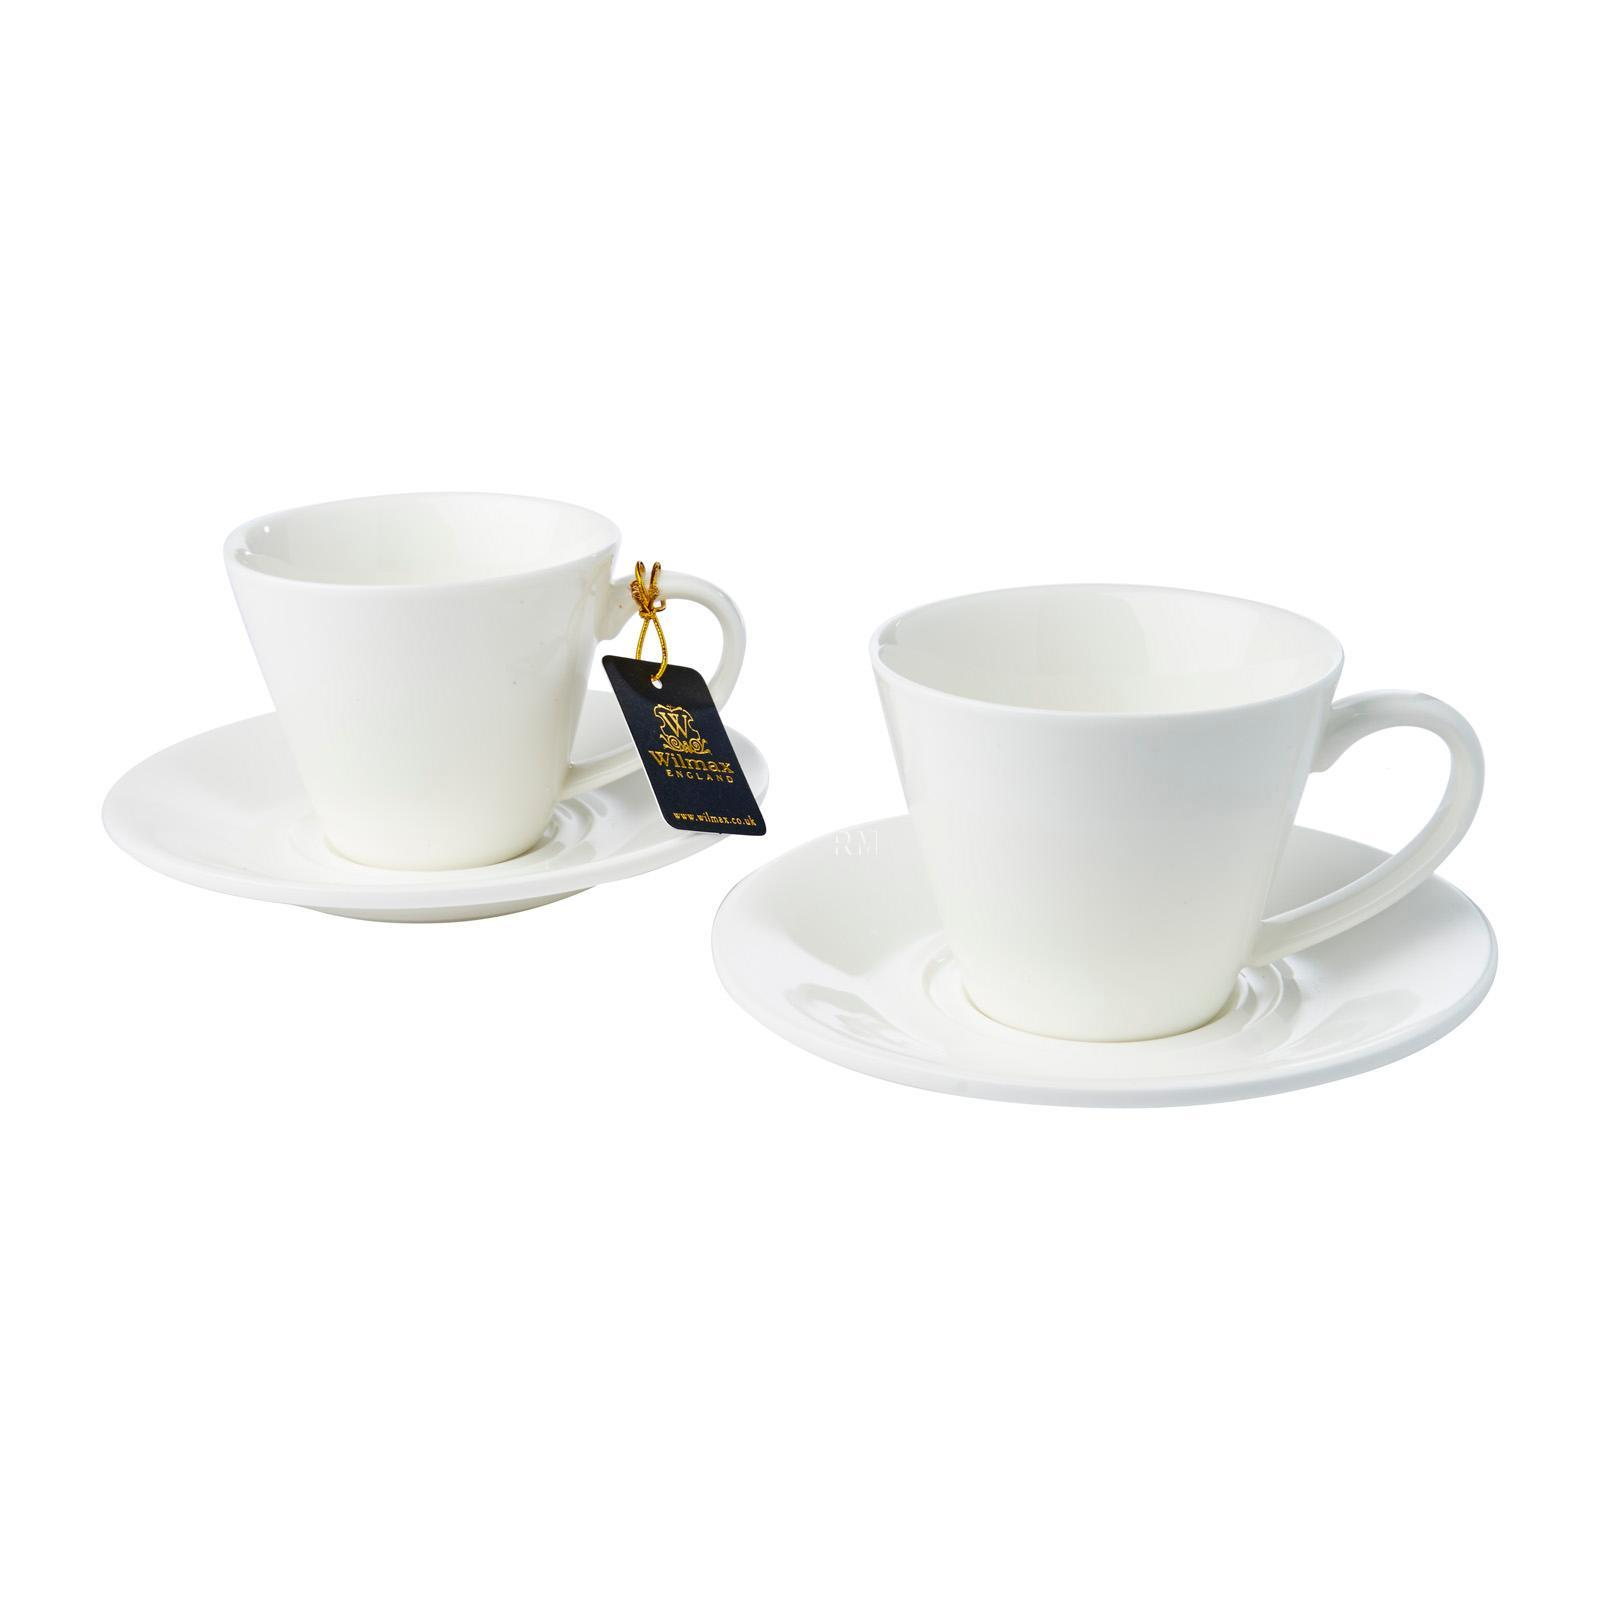 Wilmax England Porcelain Tea Cup And Saucer 180 ML (2 Piece Set)